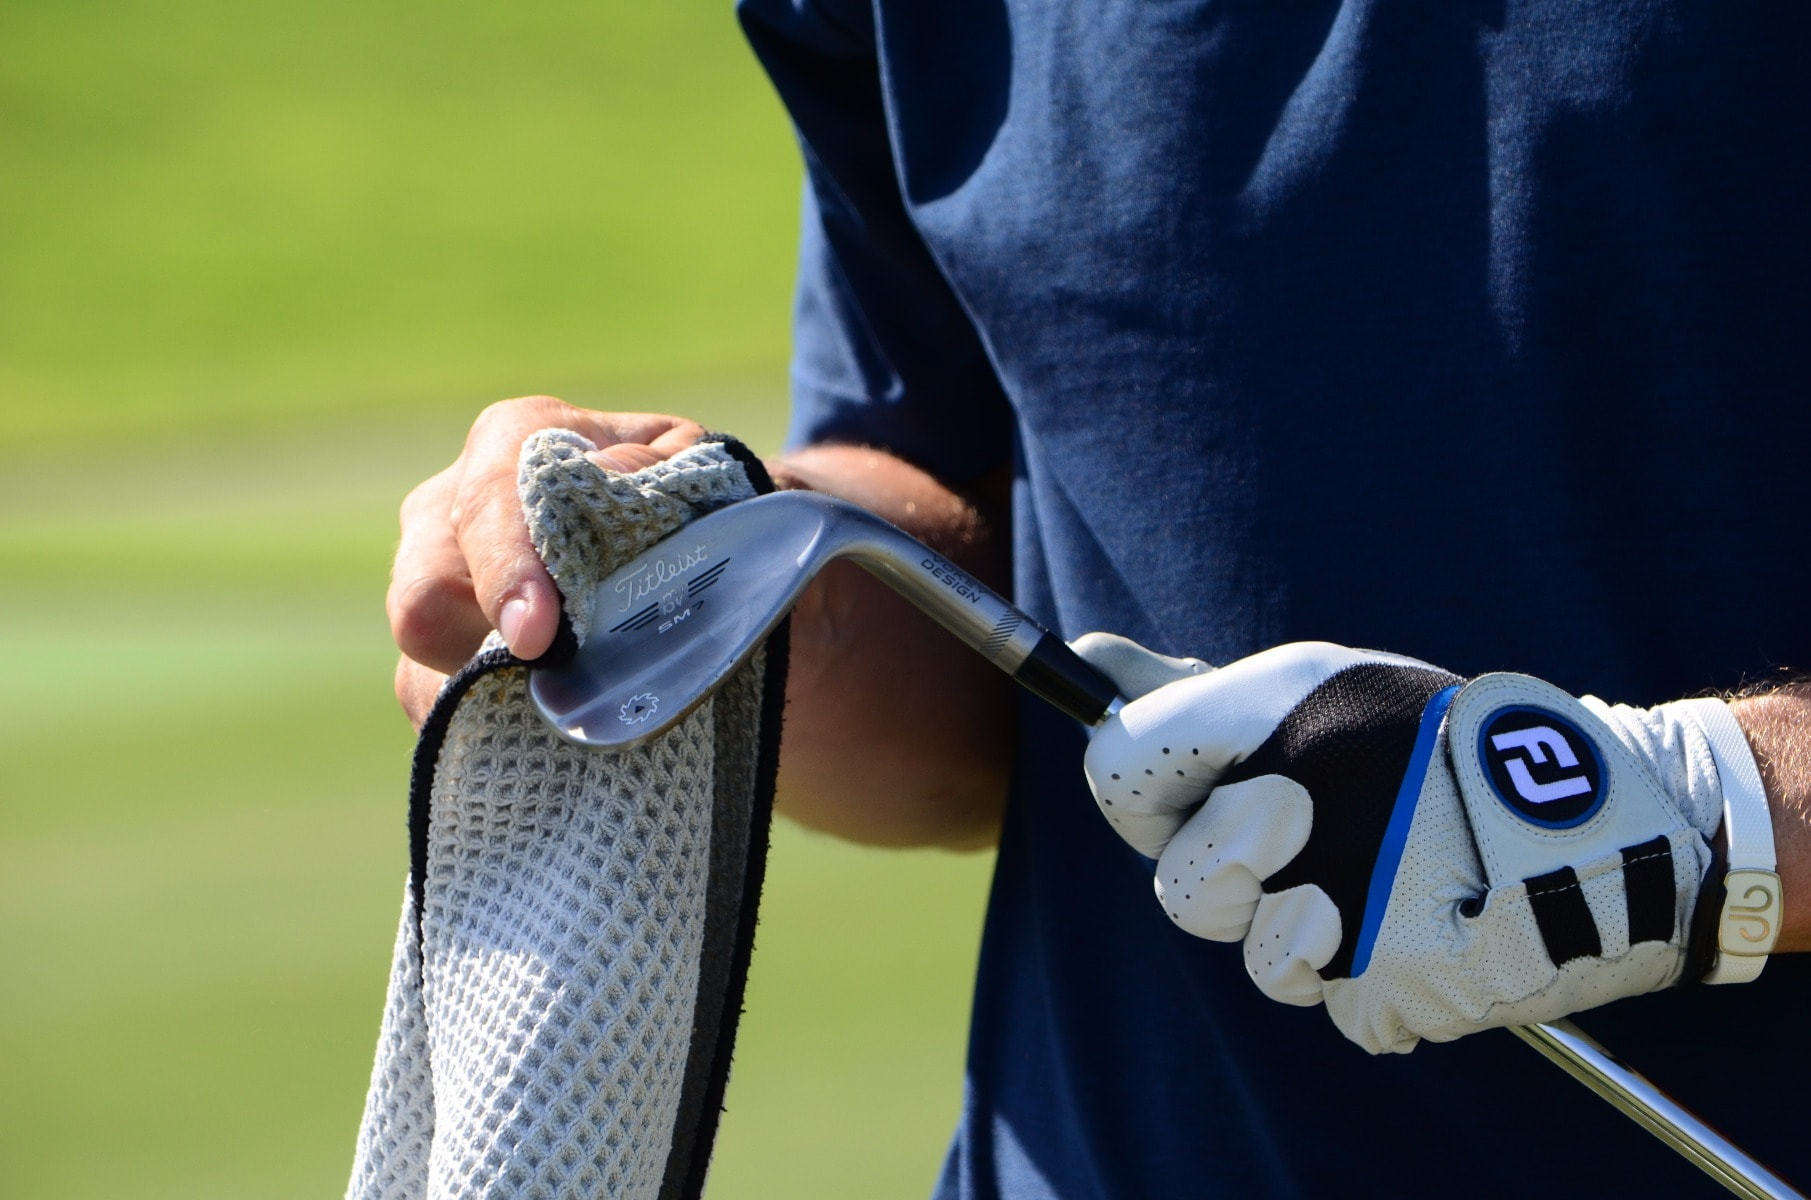 A clean clubface between strikes is important...